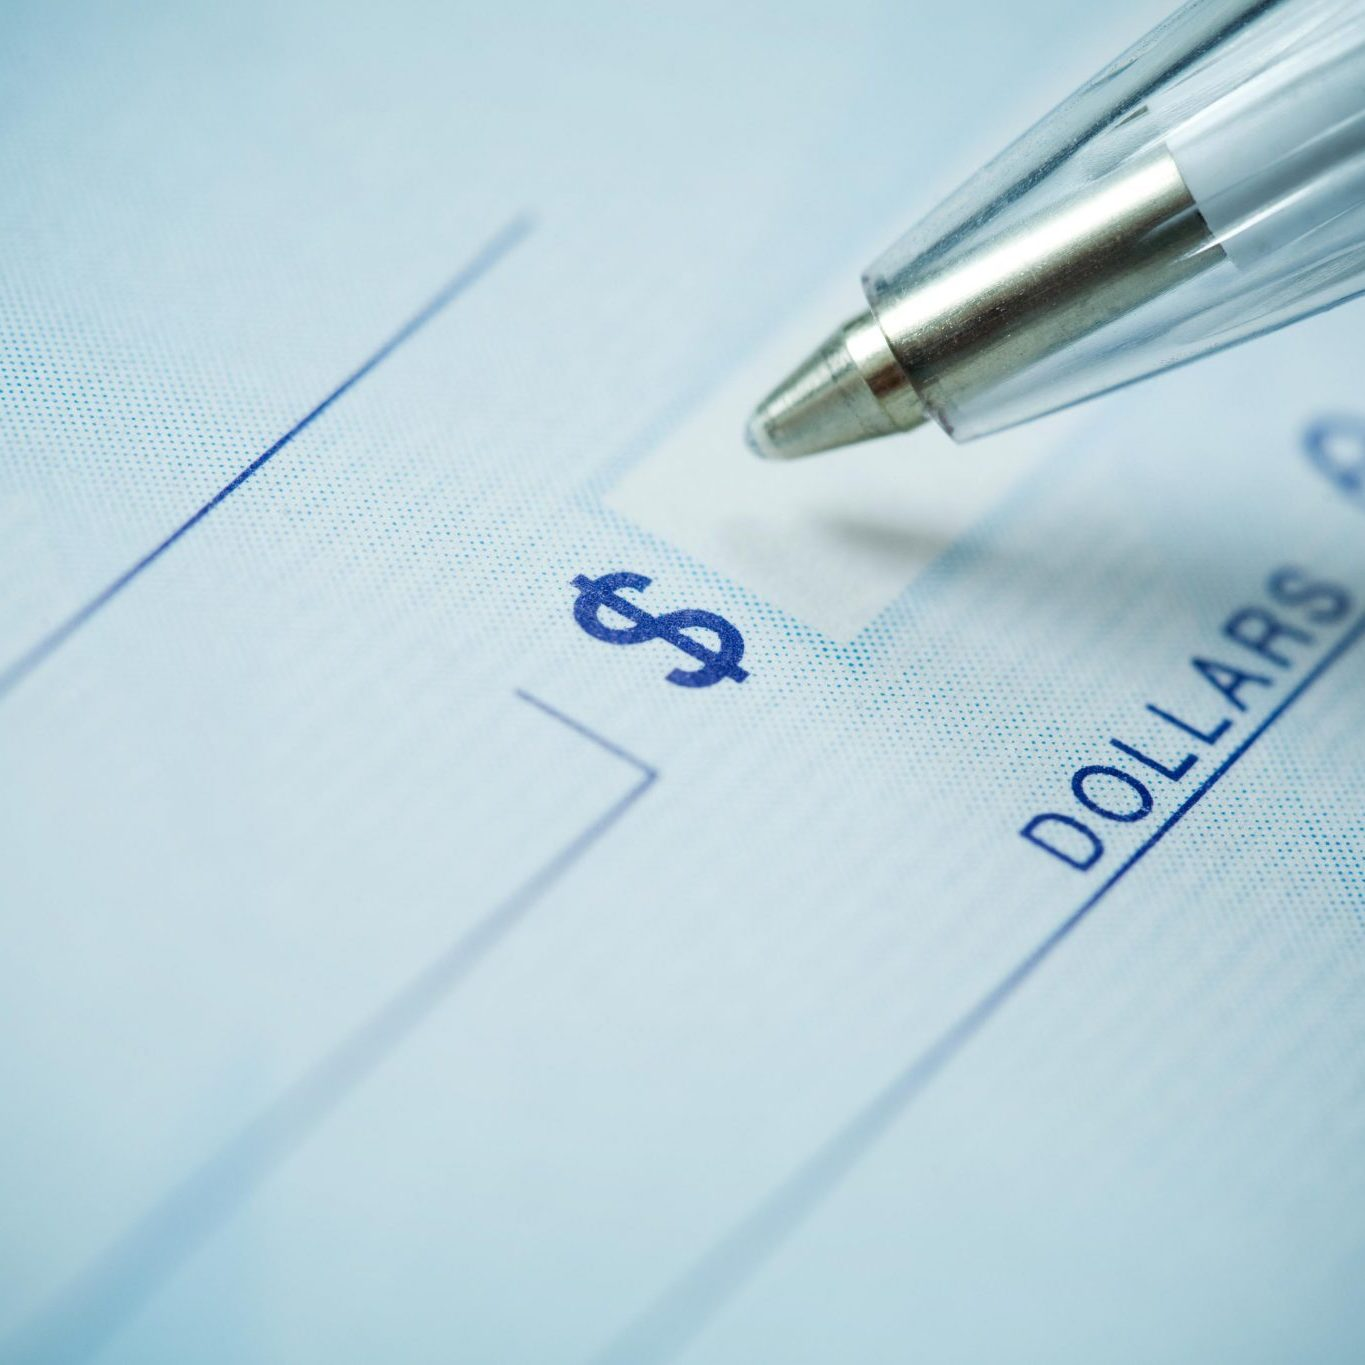 Close up of a pen and blank check.